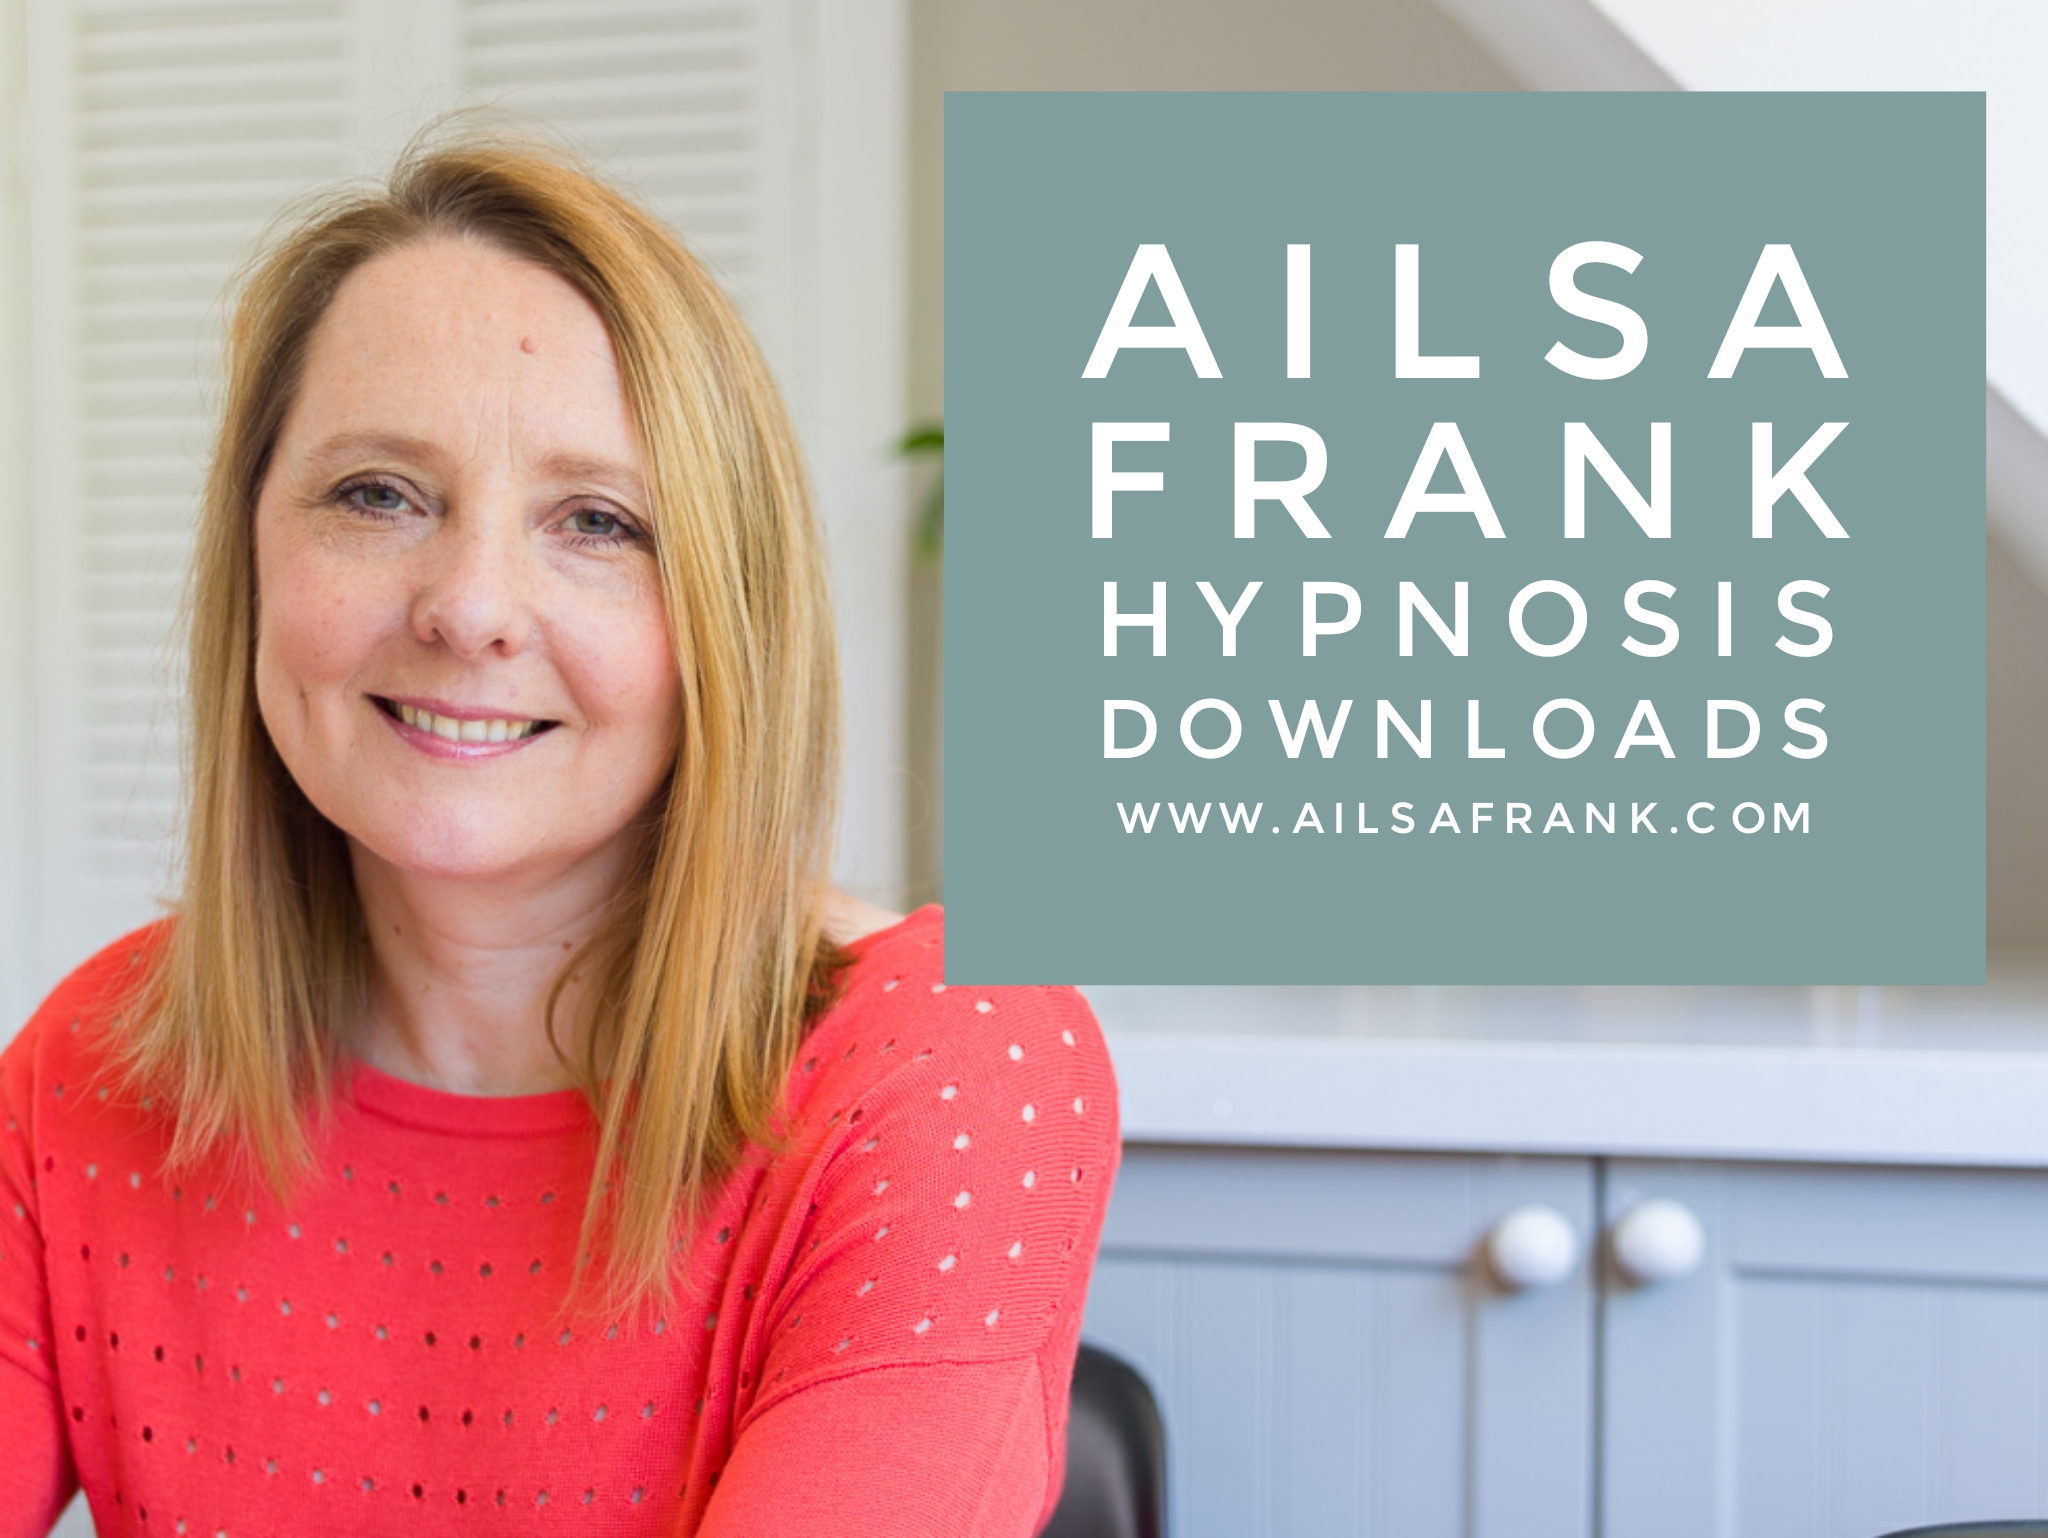 ailsa frank promo downloads pic